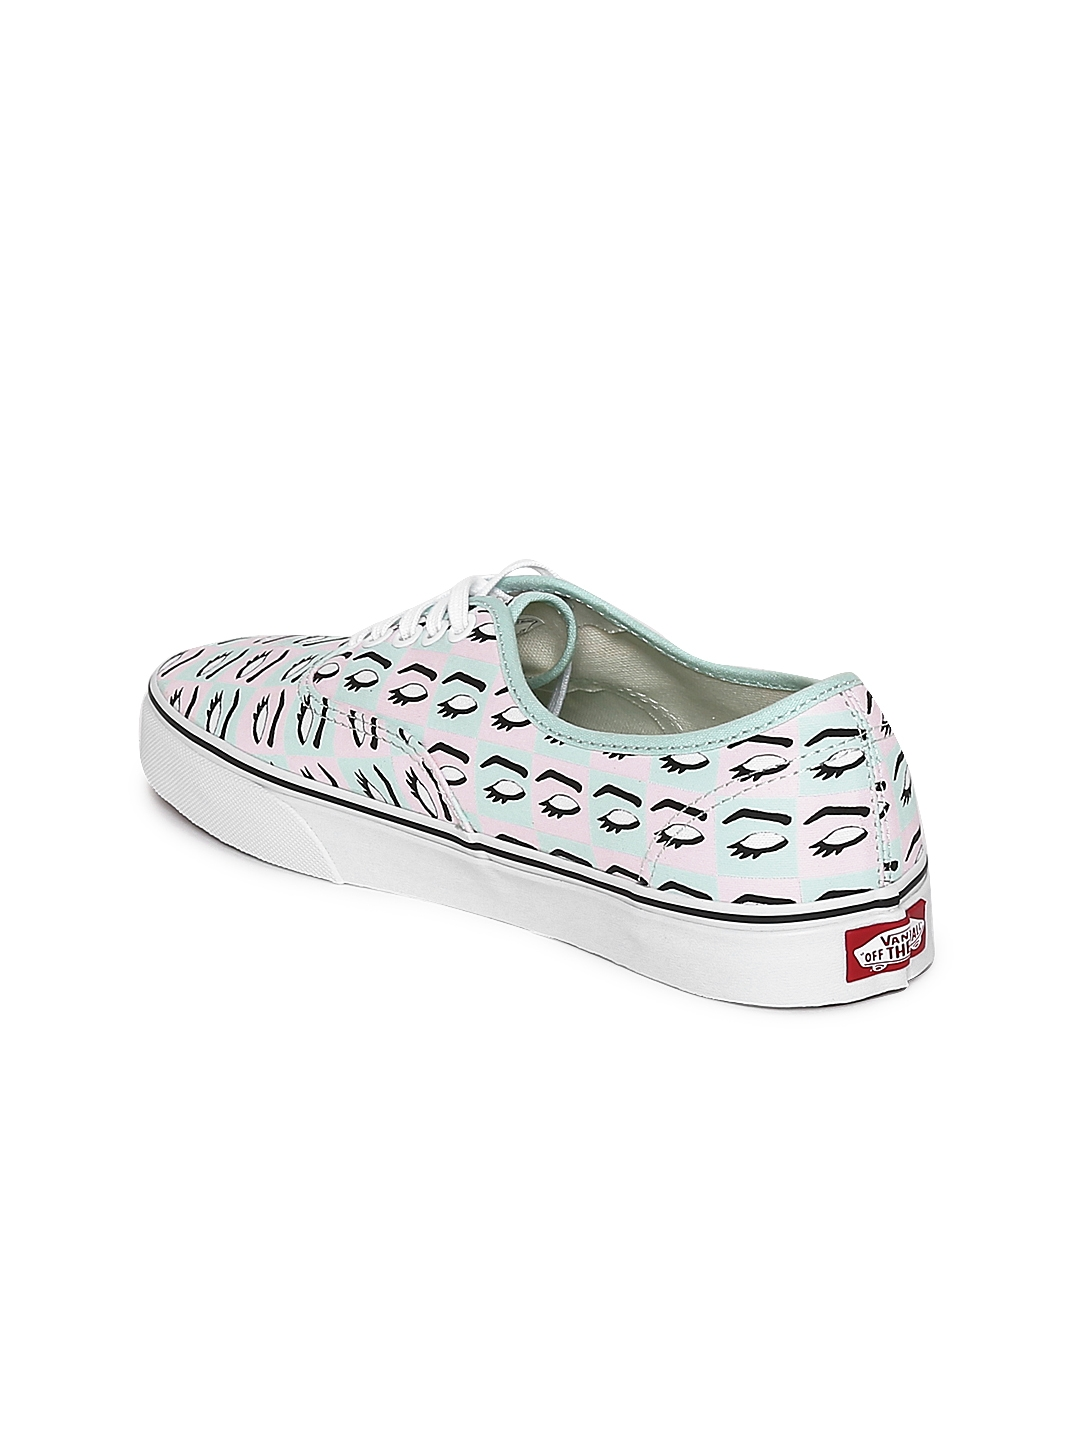 02d7fc697d Buy Vans Unisex Mint Green   Pink Printed Authentic Sneakers ...